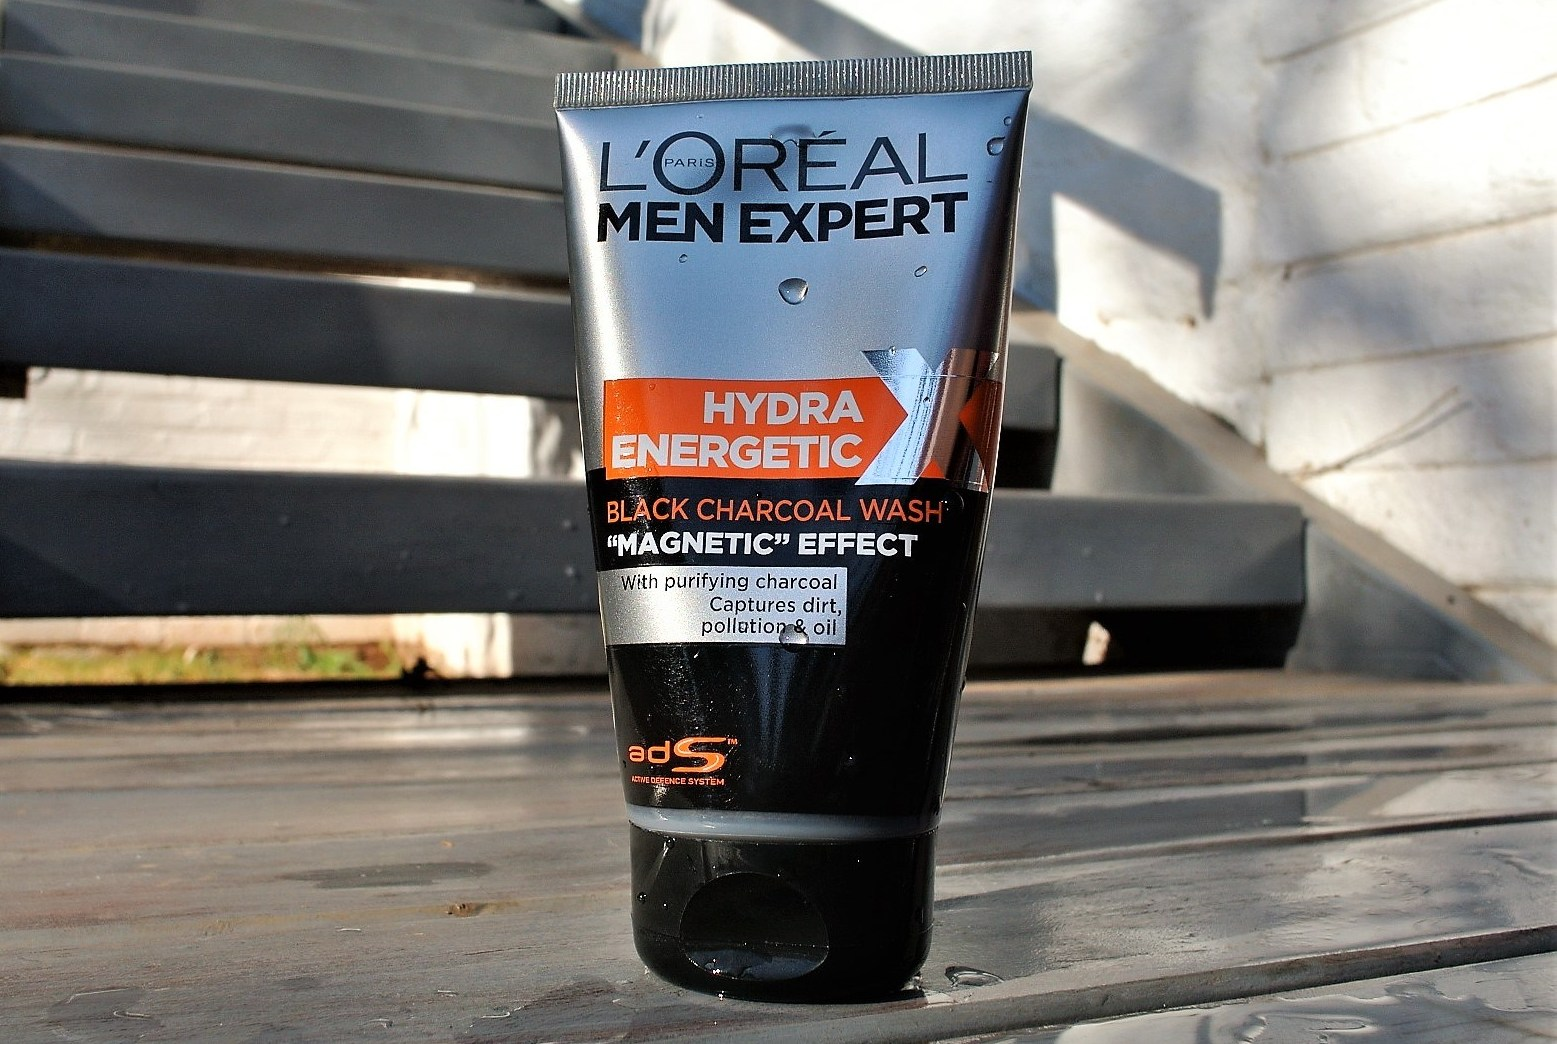 L'Oreal Paris Skincare Men Expert Hydra Energetic Facial Cleanser Review